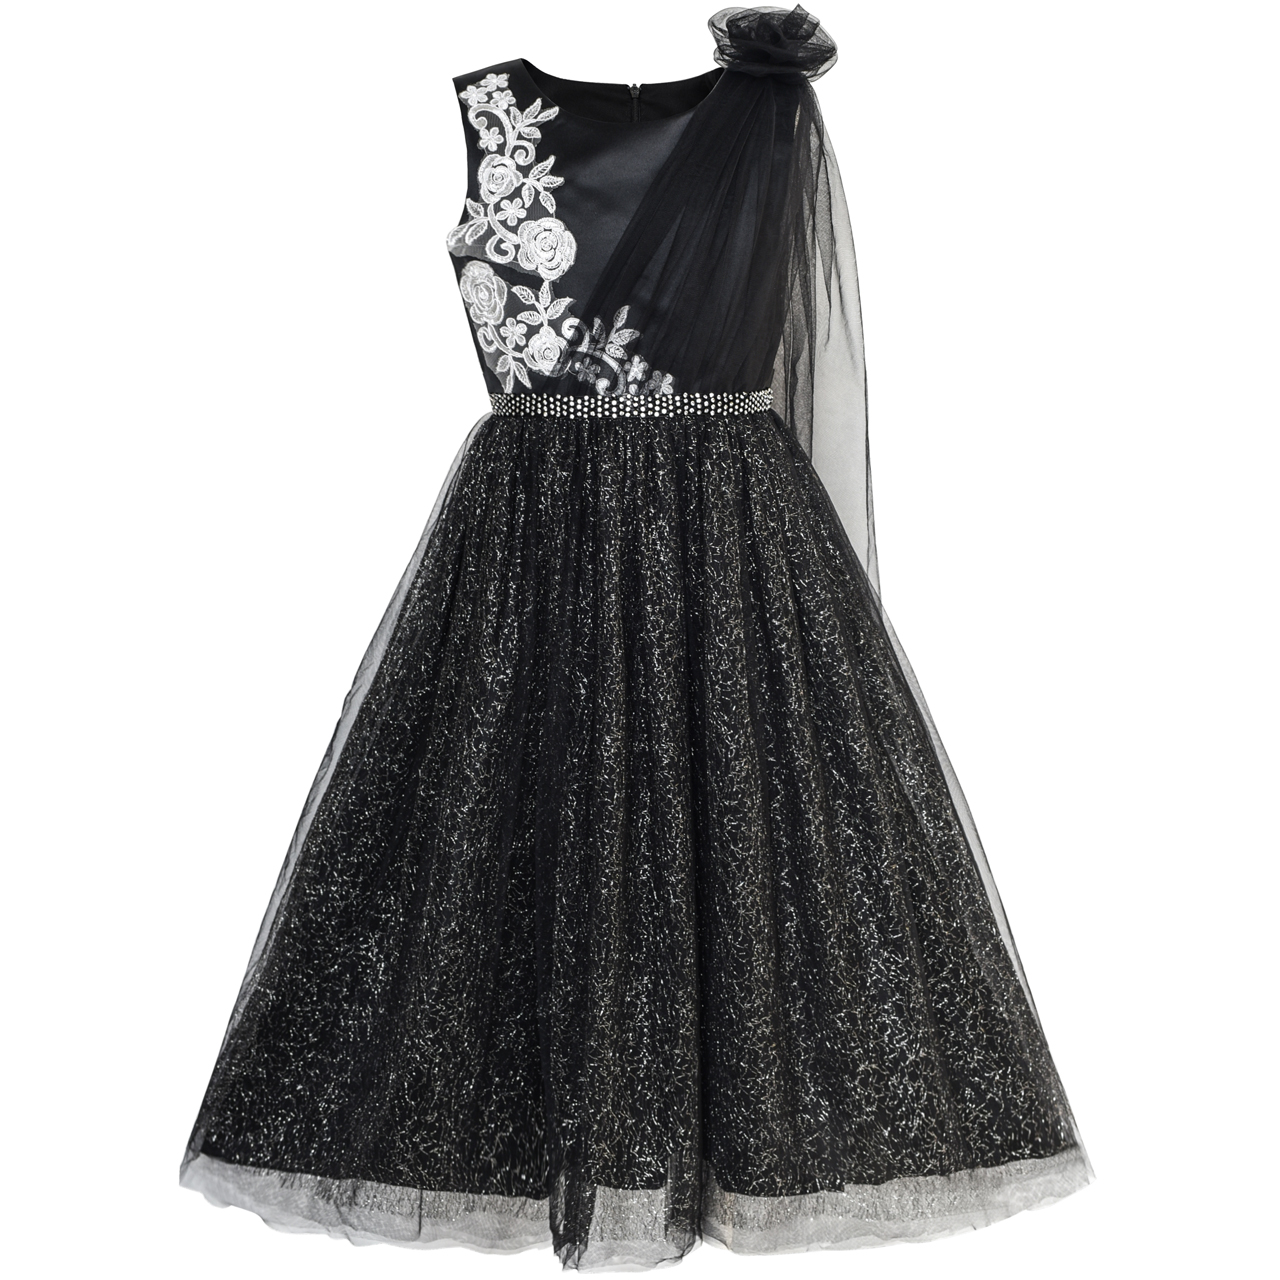 Girls Dress Black Sparkling Tulle Lace Party Prom Gown 2018 Summer Princess Wedding Dresses Kids Clothes Size 6-12Girls Dress Black Sparkling Tulle Lace Party Prom Gown 2018 Summer Princess Wedding Dresses Kids Clothes Size 6-12